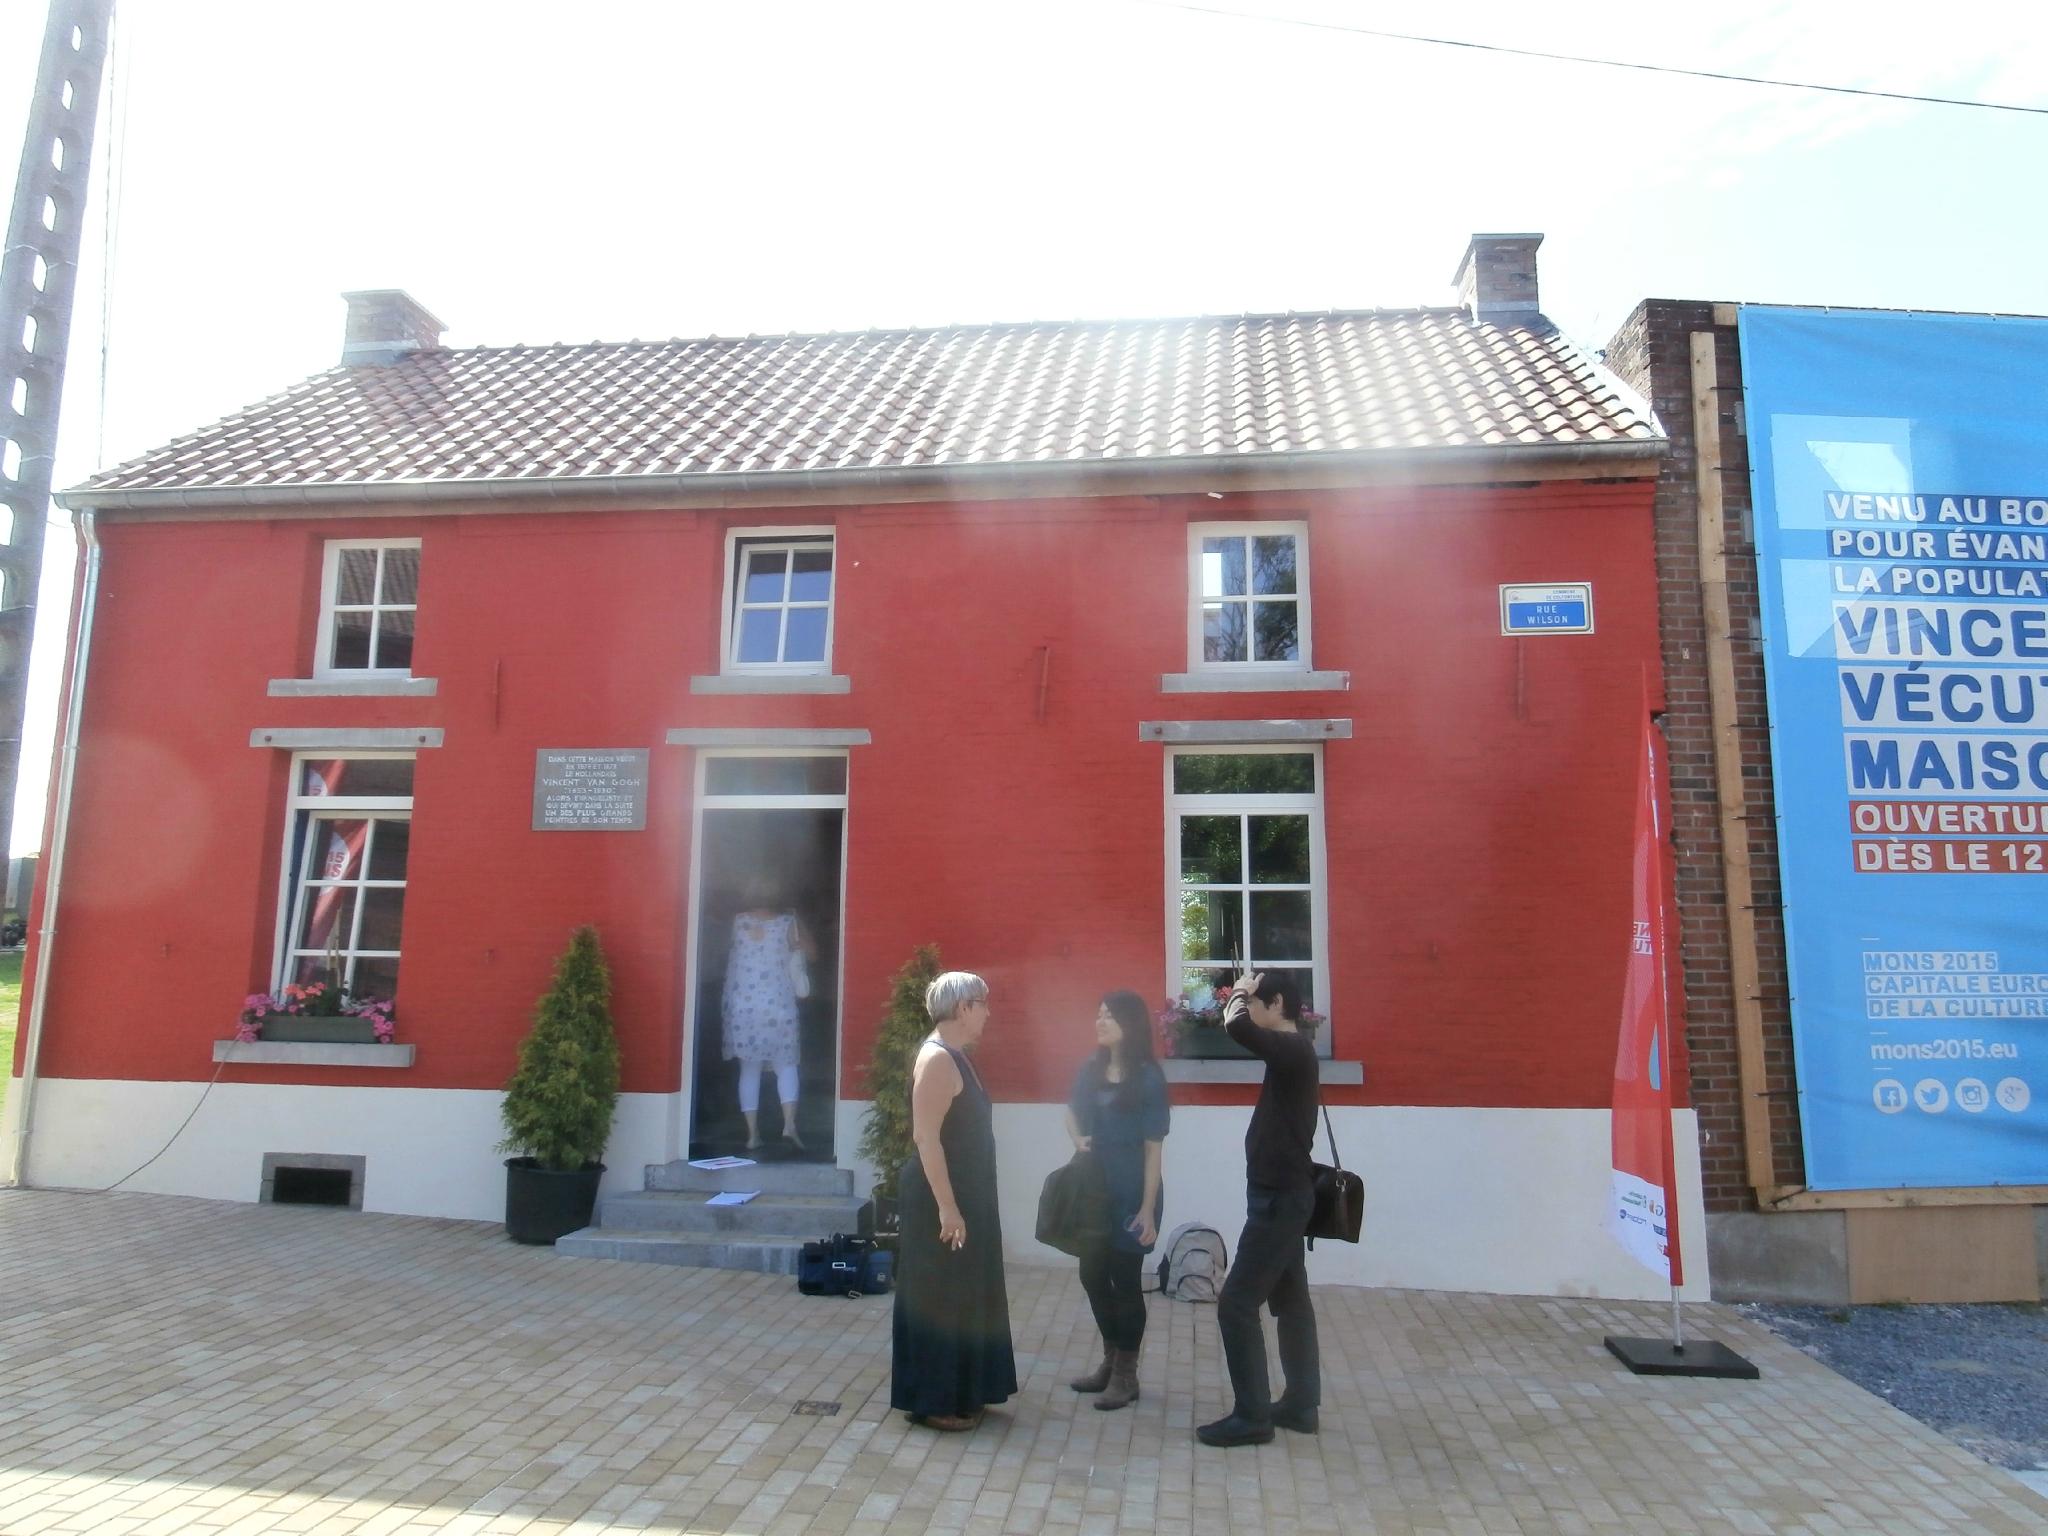 Wasmes : Maison Van Gogh : la boutique est ouverte / the artshop is open